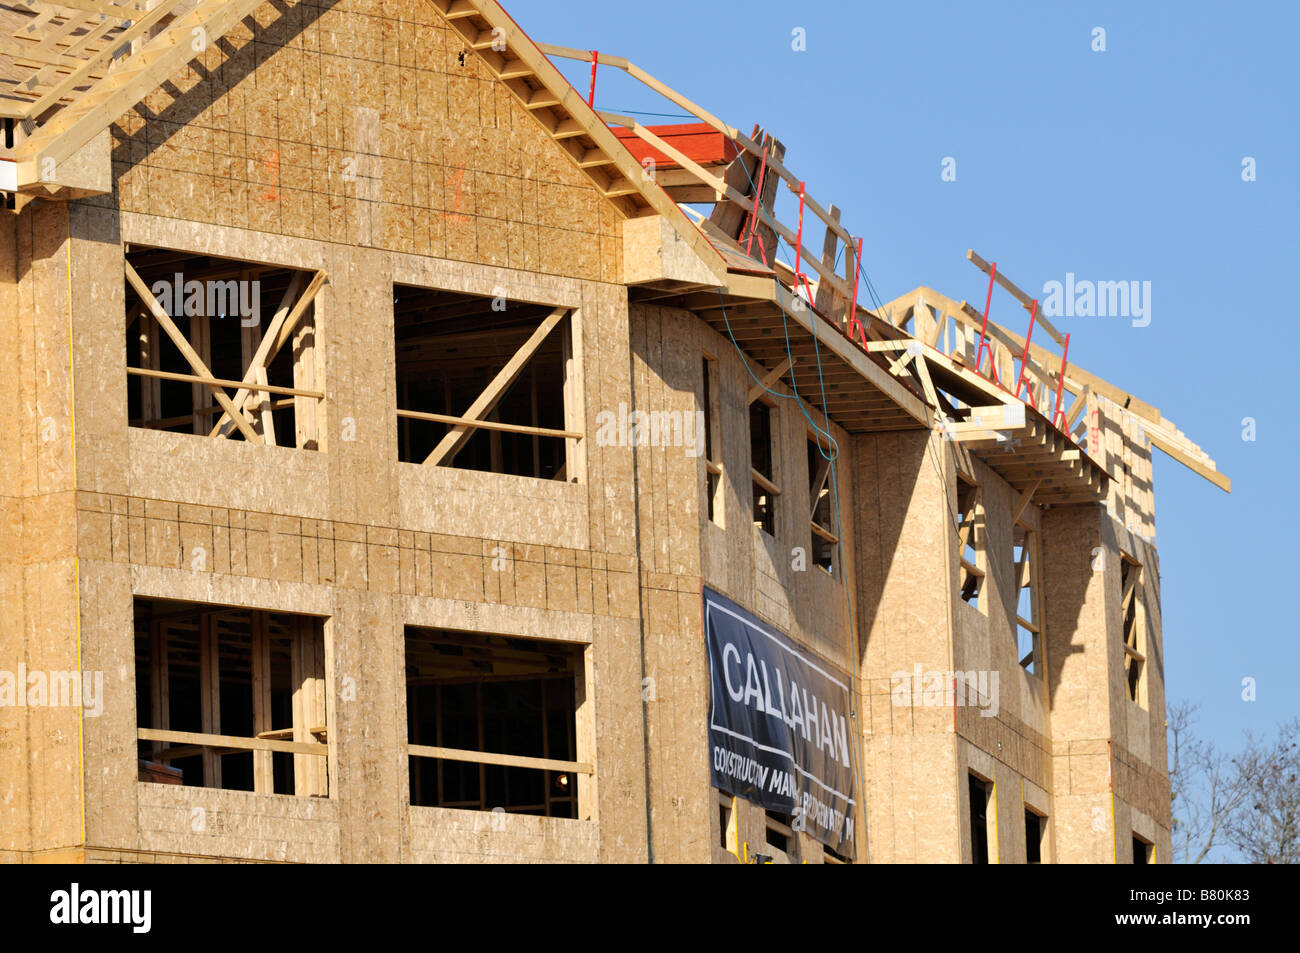 Wood frame construction of new apartment building with windows cutout framing and fiber board - Stock Image